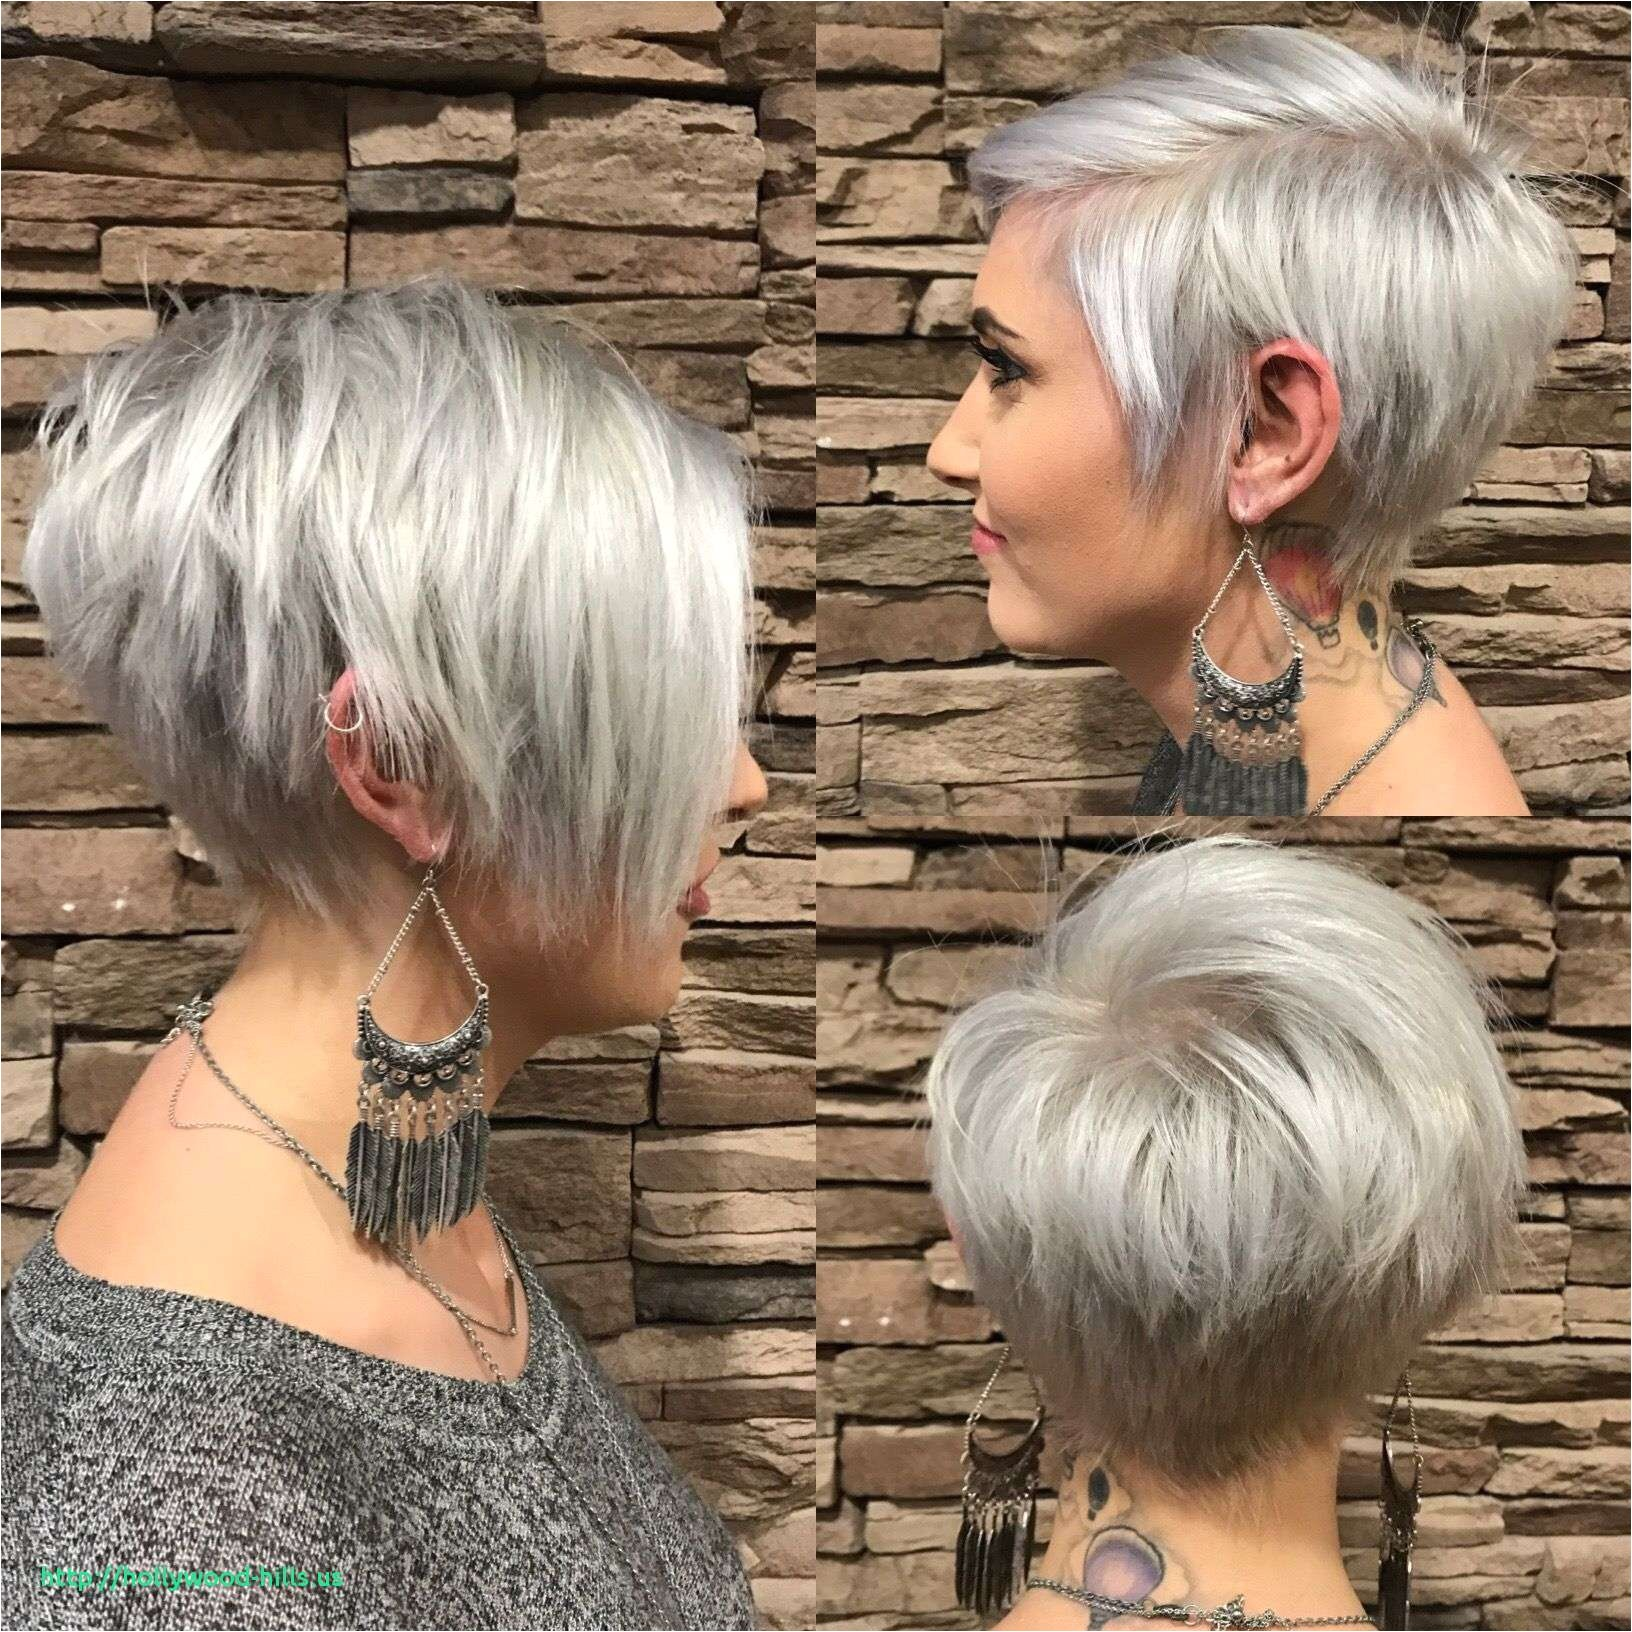 A Line Hair Styles Awesome Edgy A Line Hairstyles Awesome I Pinimg 1200x 0d 60 8a